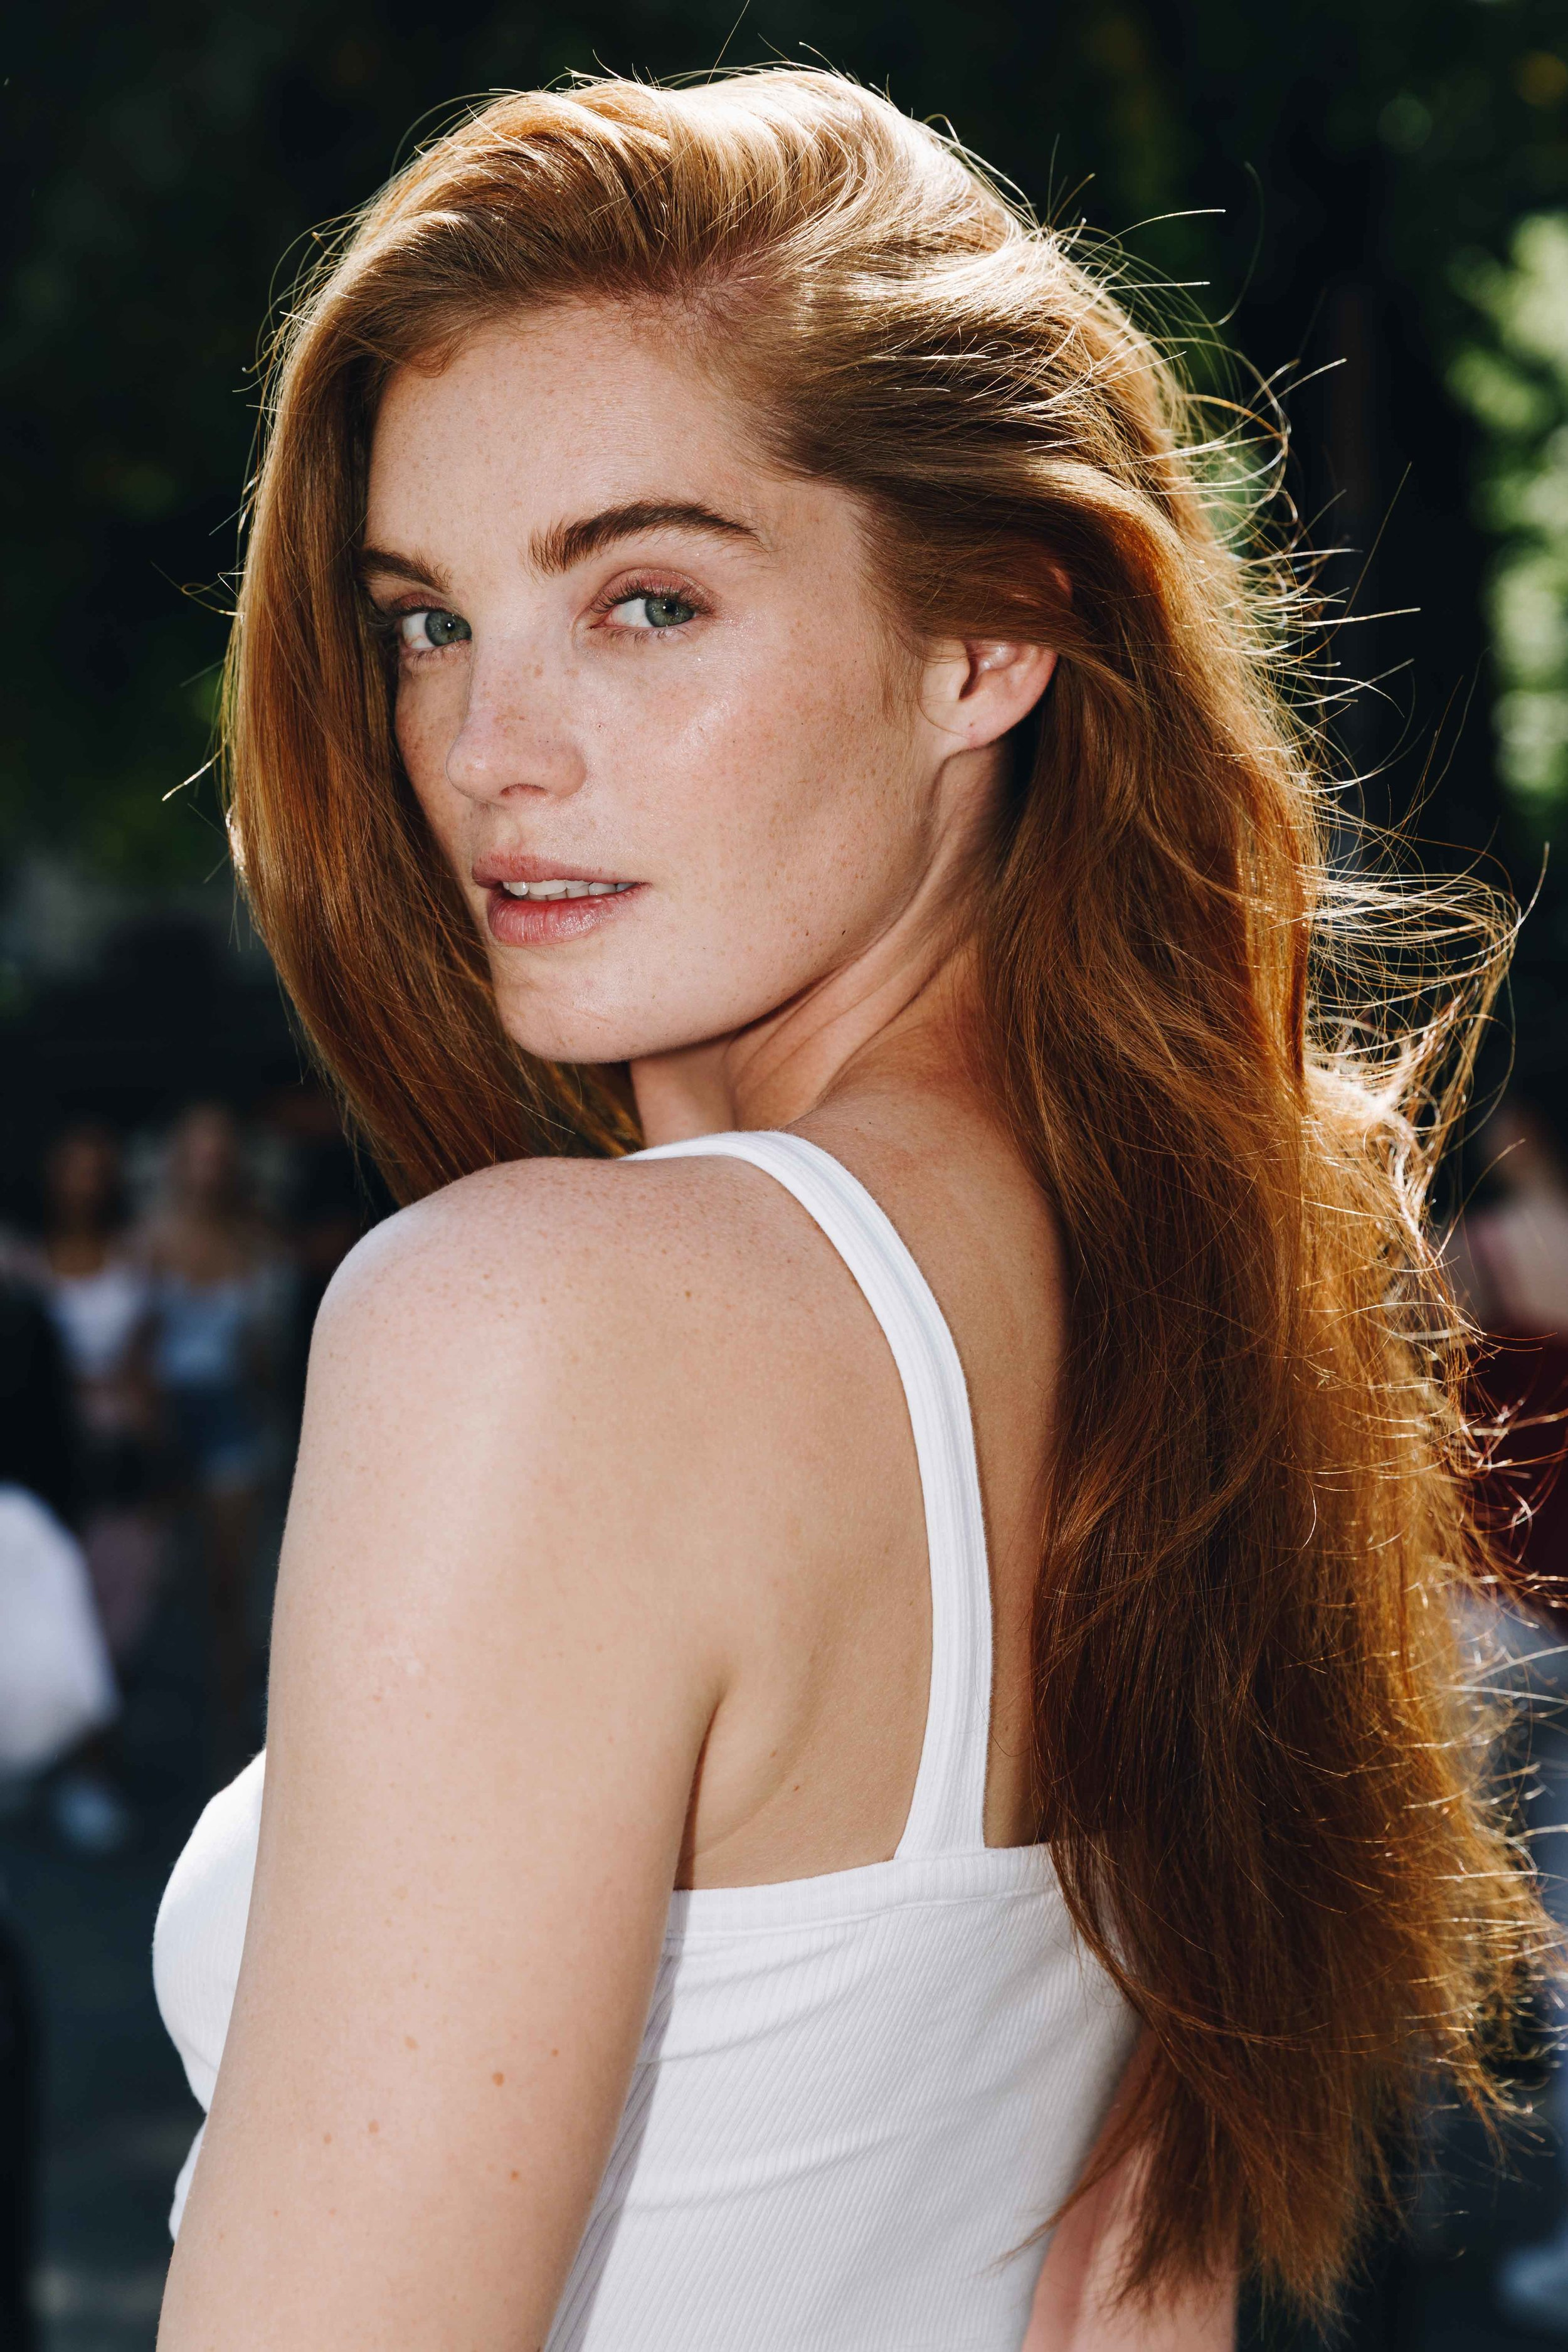 Alexina Graham during Paris Fashion Week Haute-Couture Fall/Winter 2019/2020